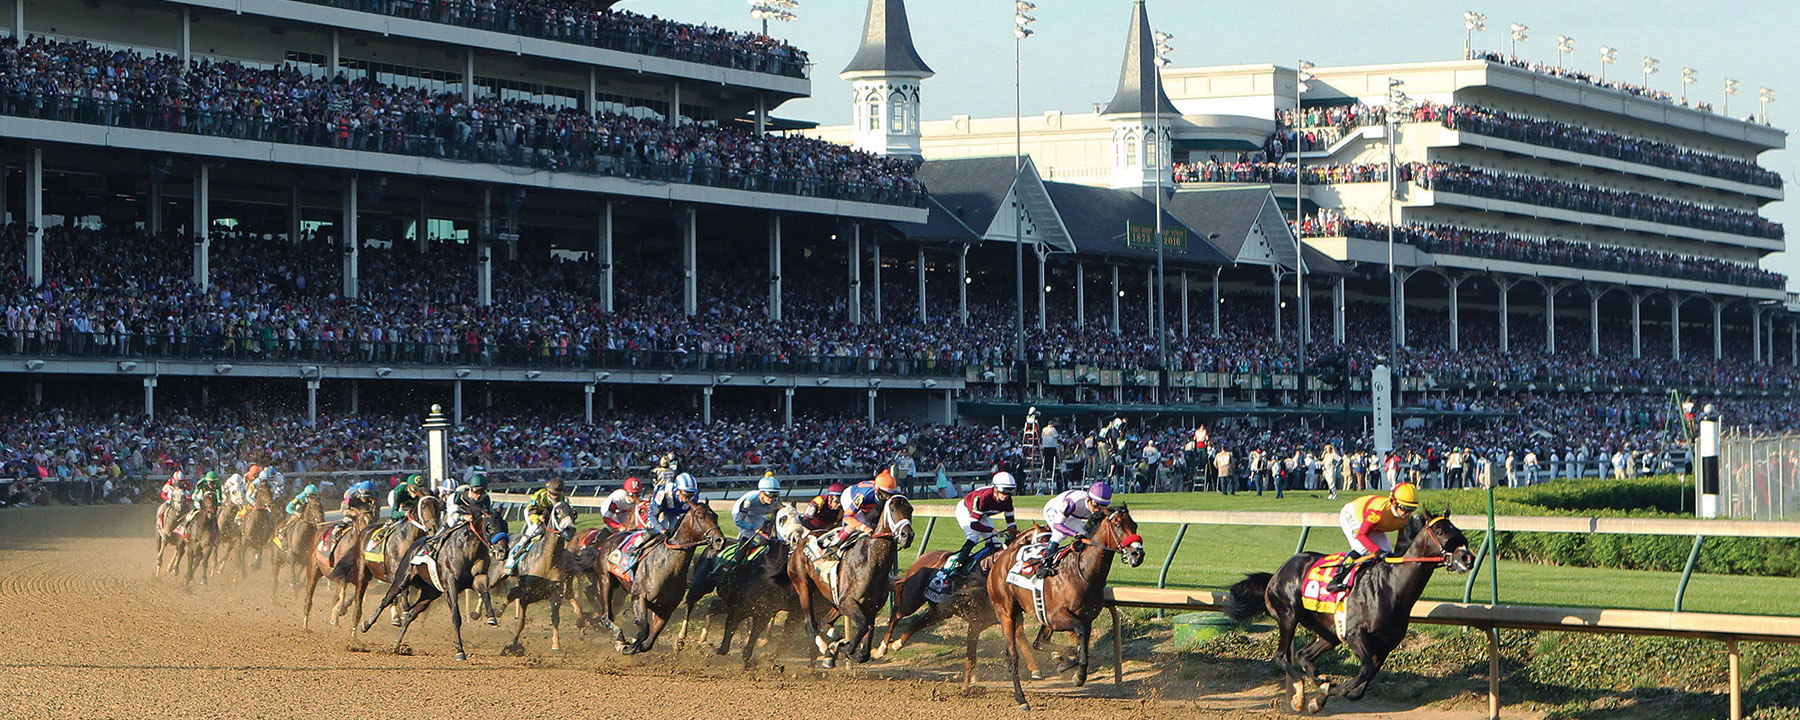 2018-Landing-Page-Kentucky-Derby-1